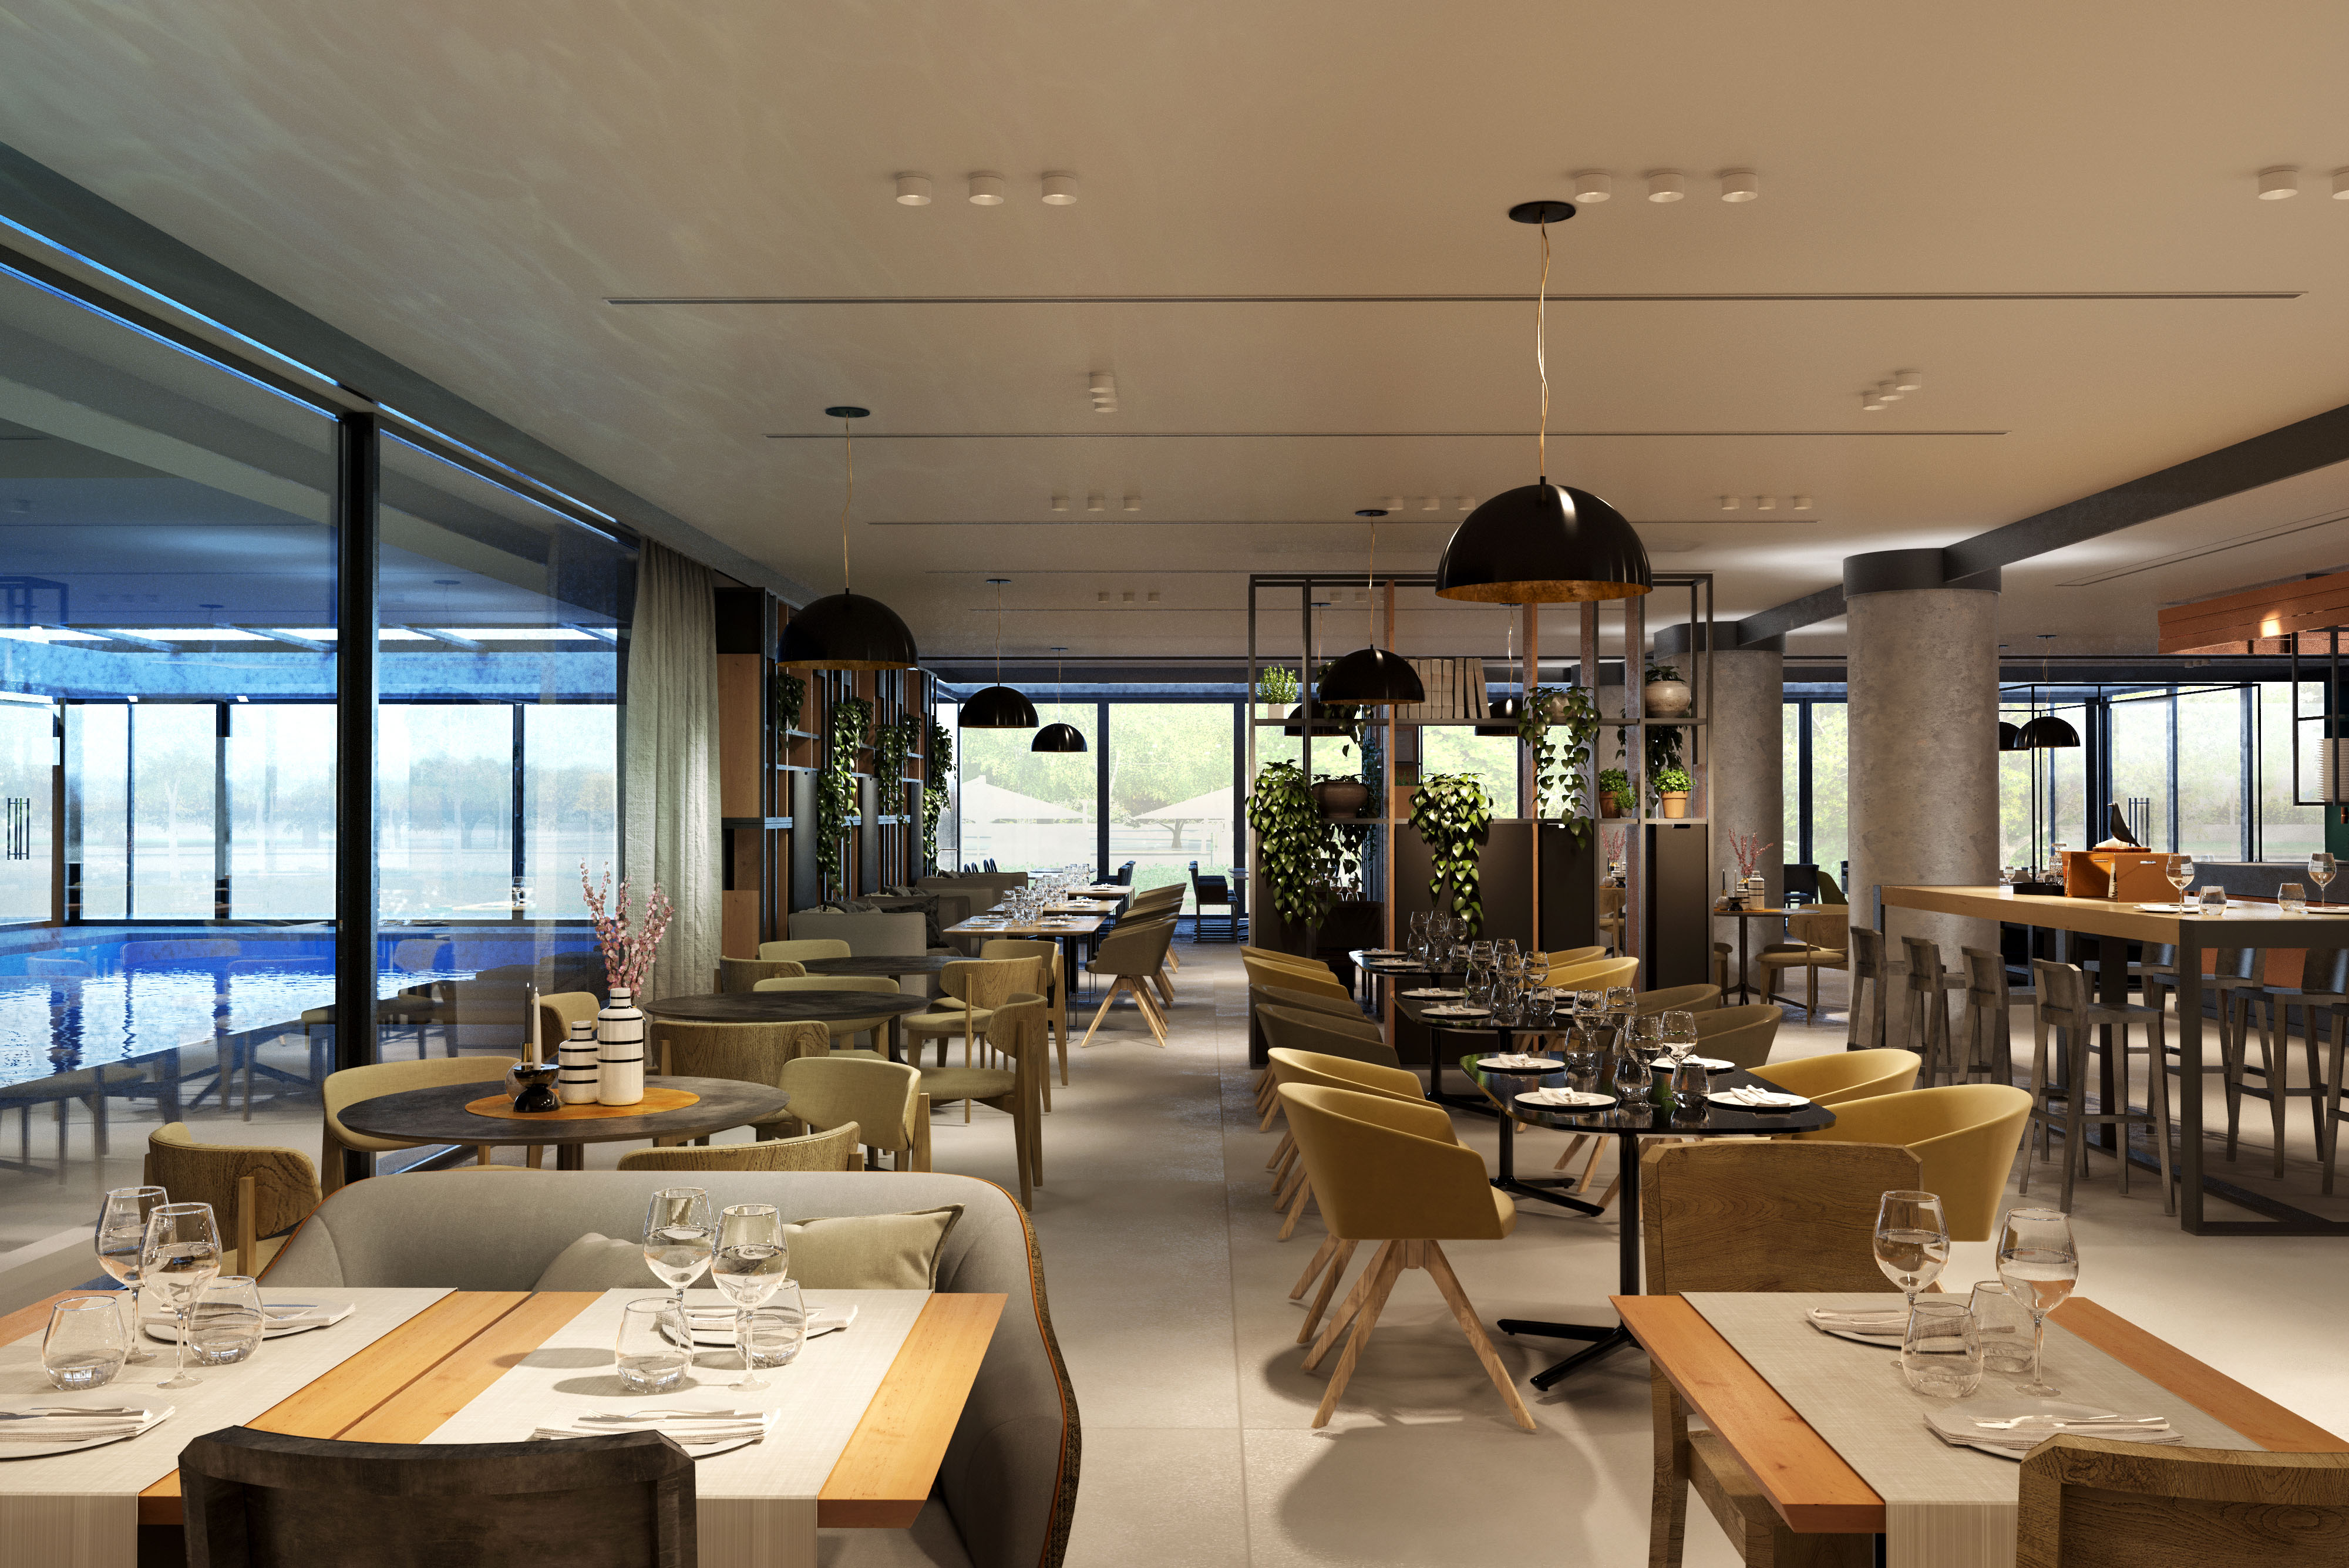 Photo renderings from the Starhotels project in Bologna (photo: Massimo Iosa Ghini)